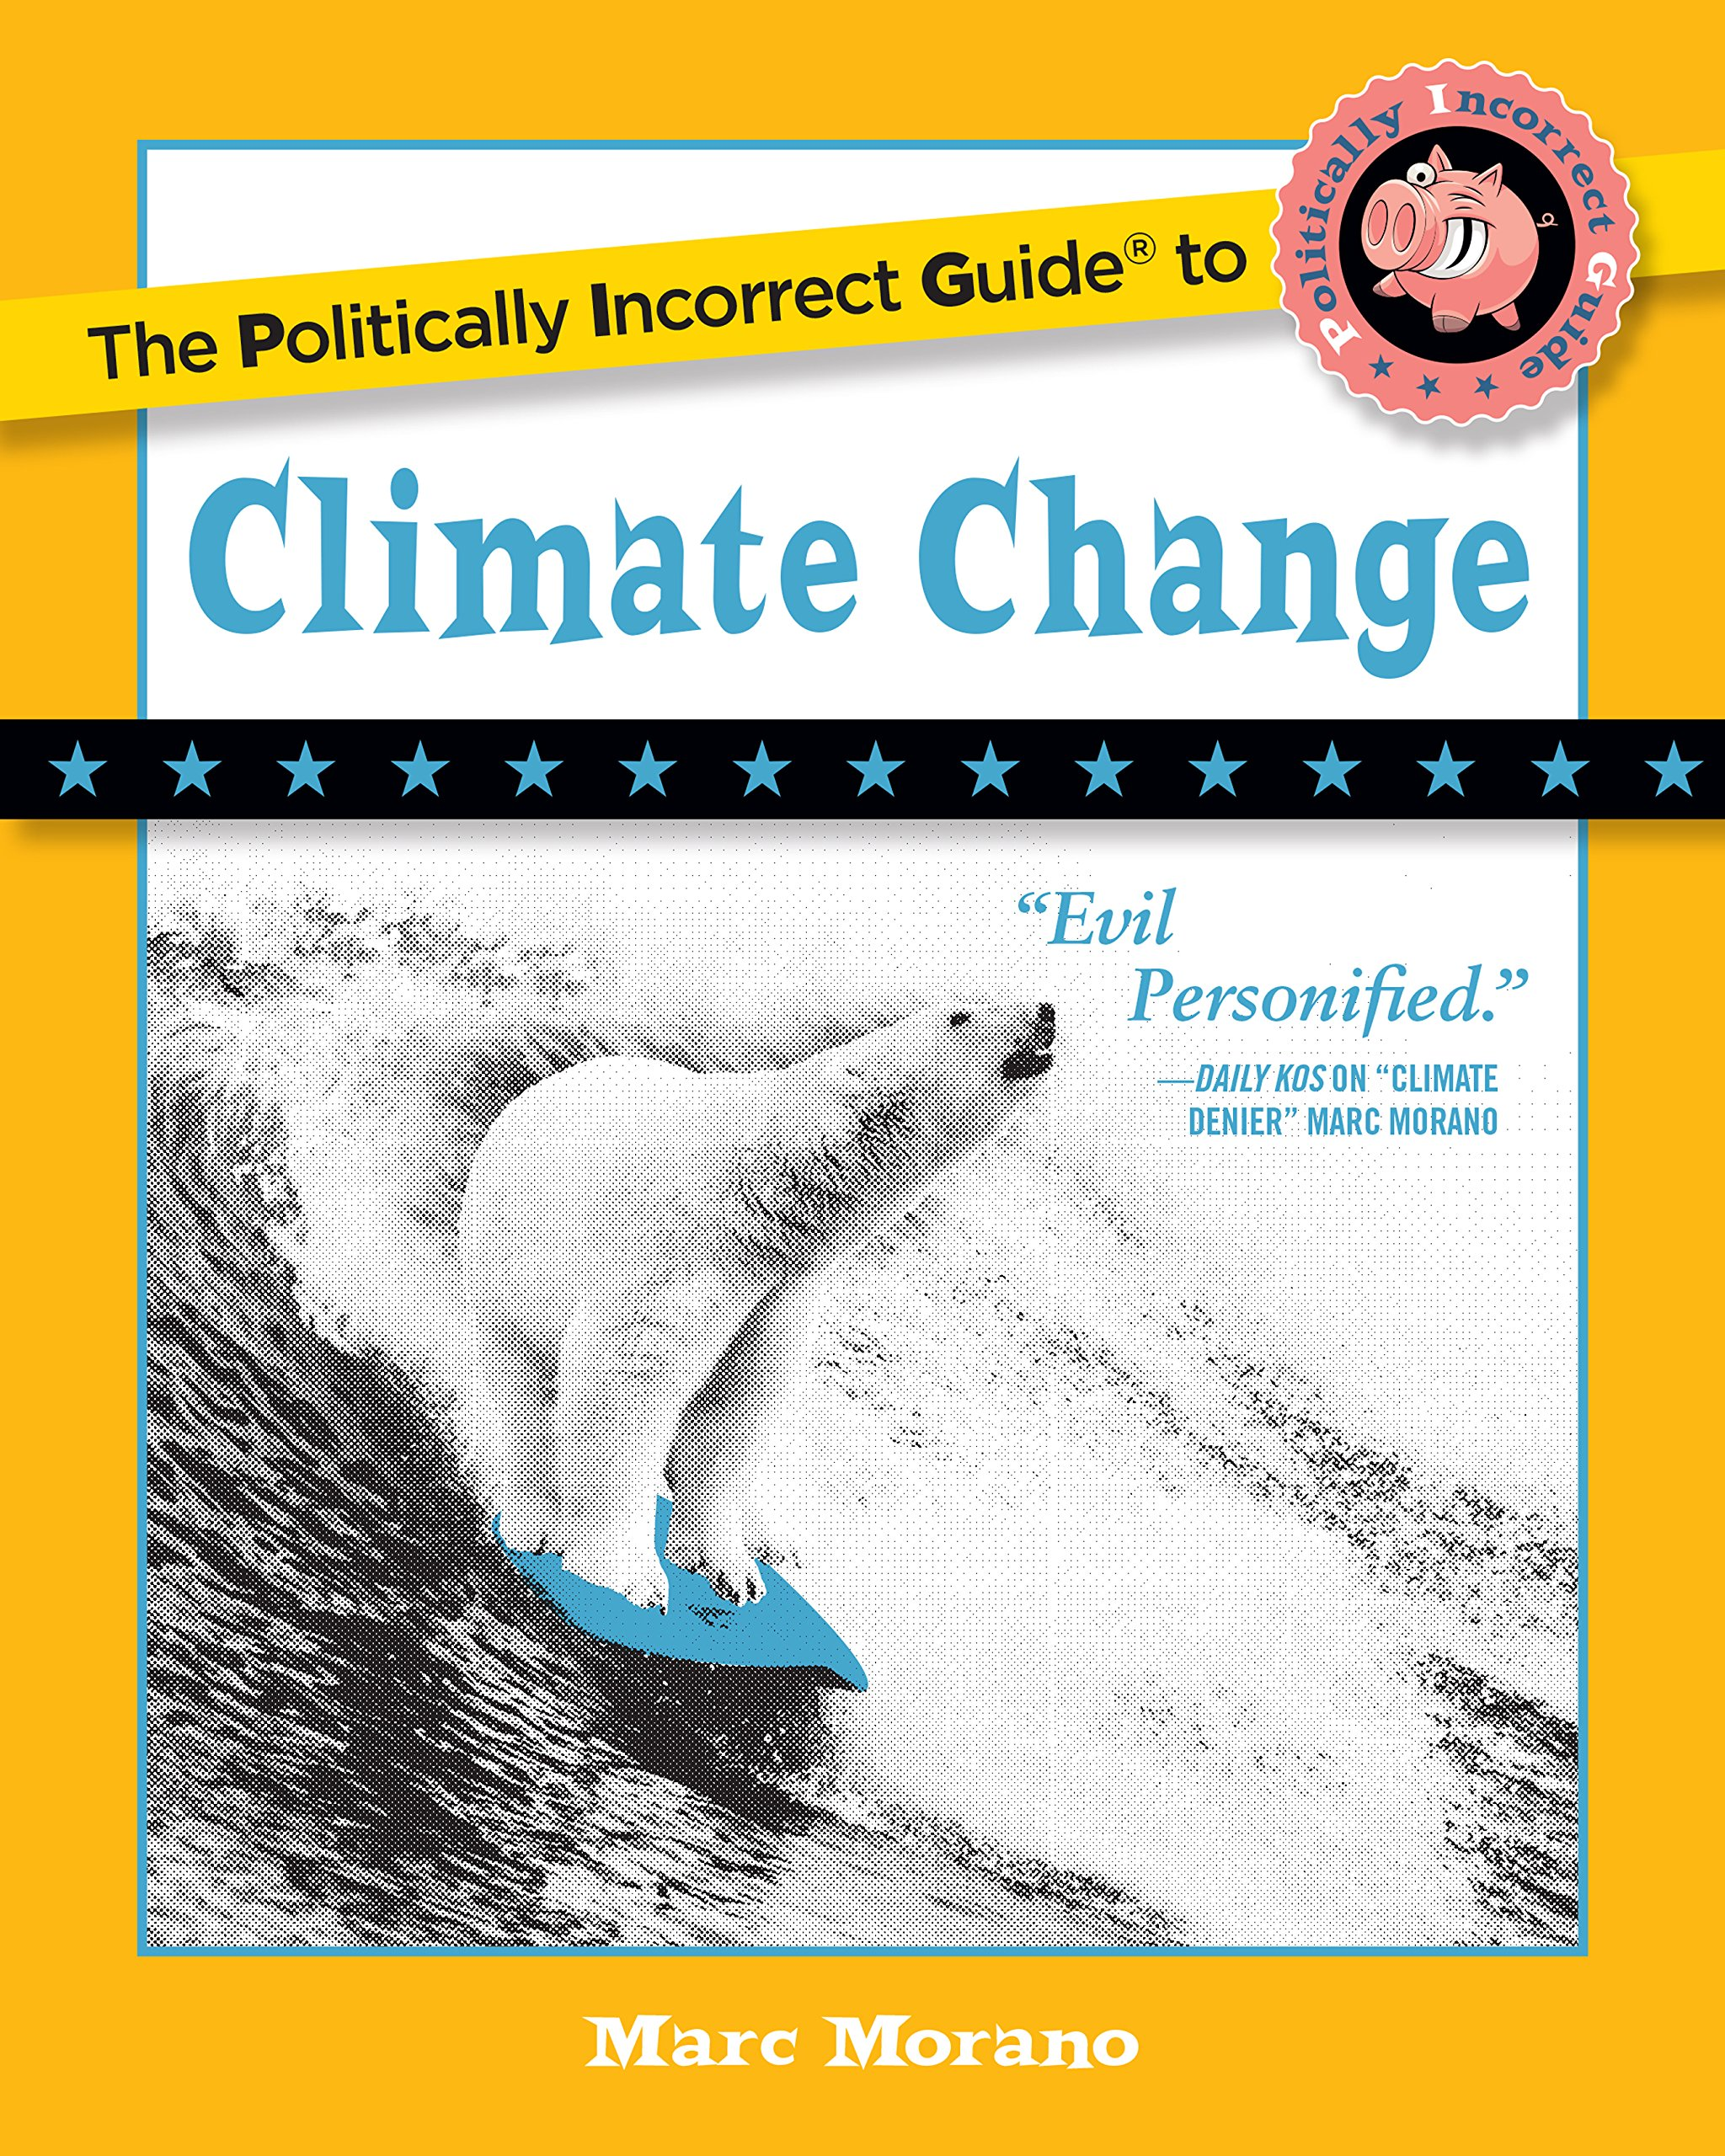 The Politically Incorrect Guide to Climate Change (The Politically Incorrect Guides) by Regnery Publishing (Image #1)